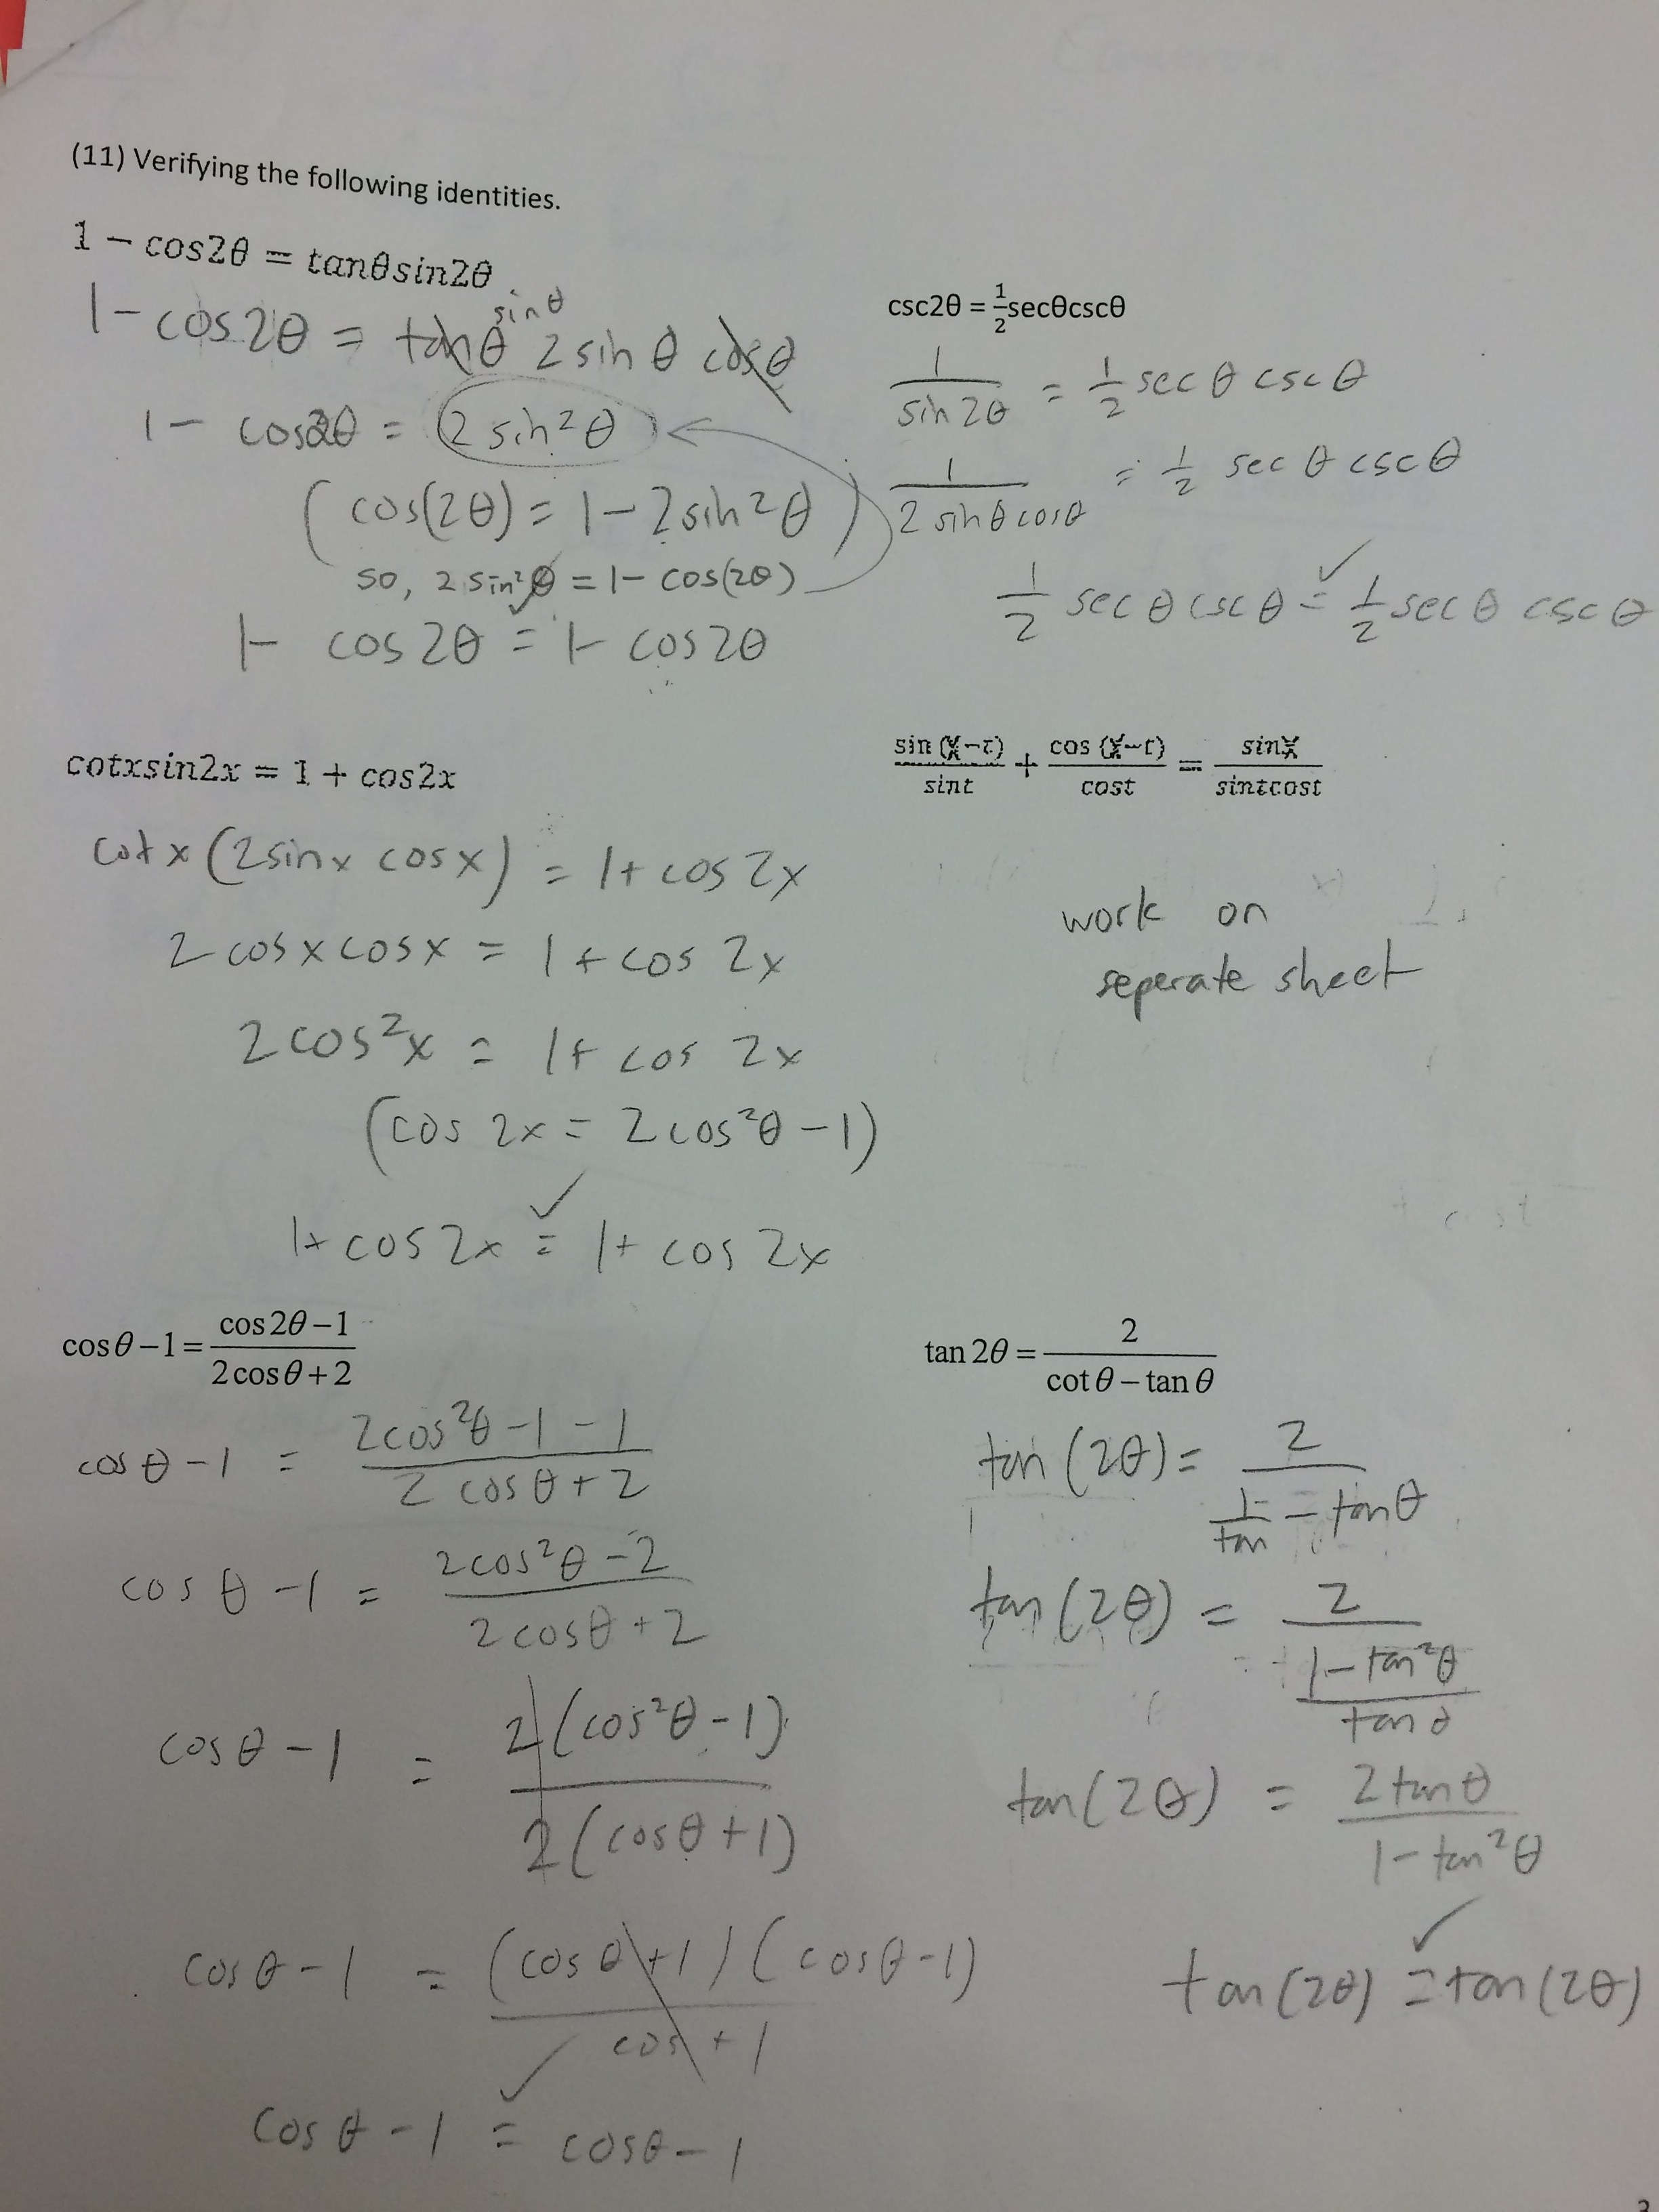 worksheet 5.3 Solving Trig Equations Practice Worksheet 1 Answers clayton valley charter high school half page 4 key jpg practice sum difference double